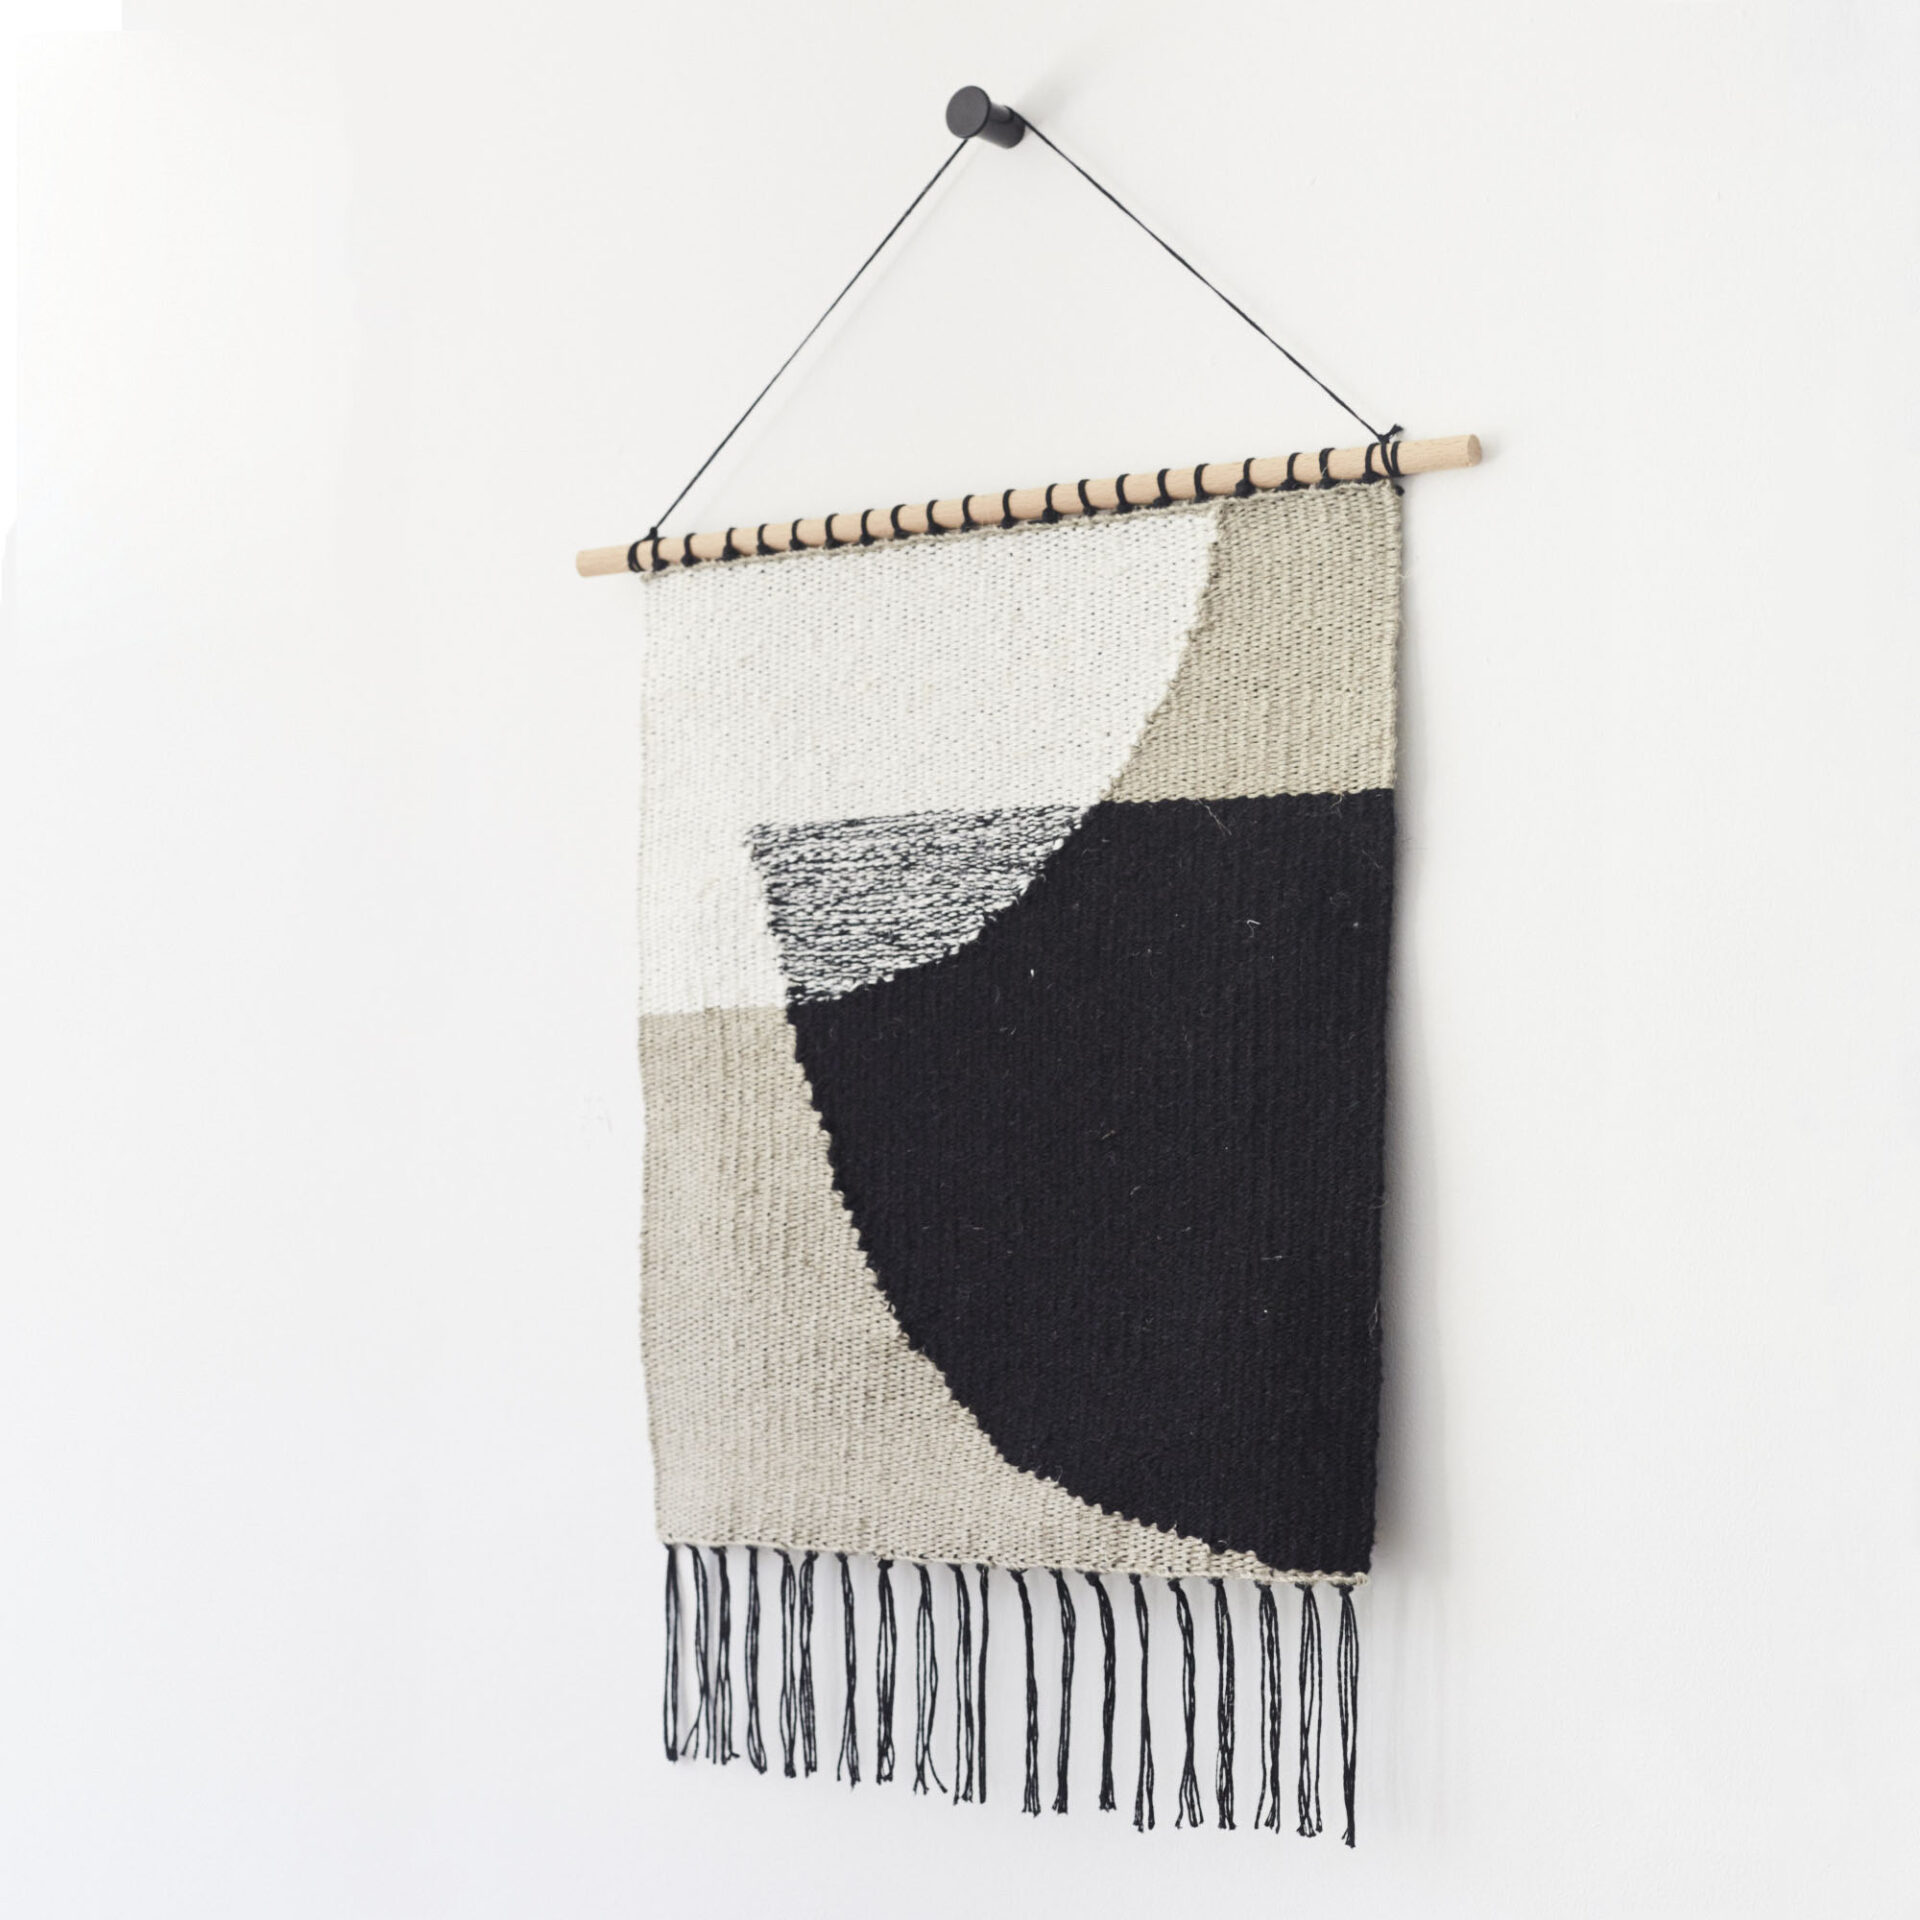 kallio-wall-hanging-tapestry-art